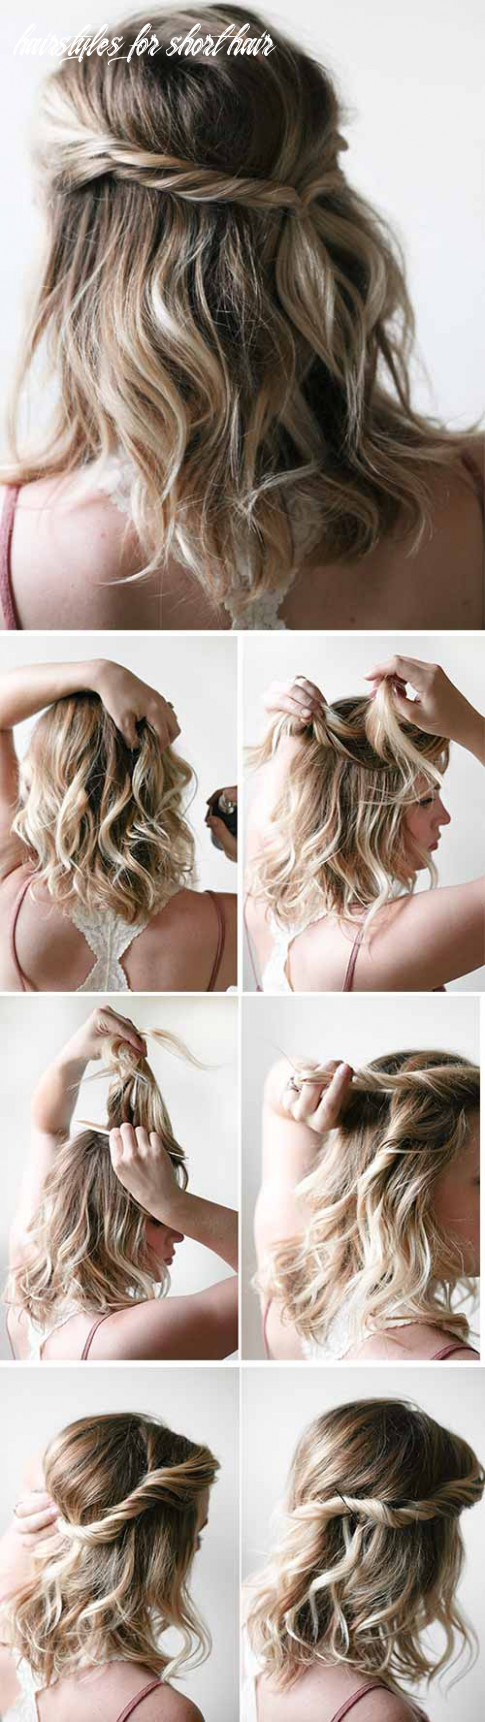 12 Incredible DIY Short Hairstyles - A Step-By-Step Guide